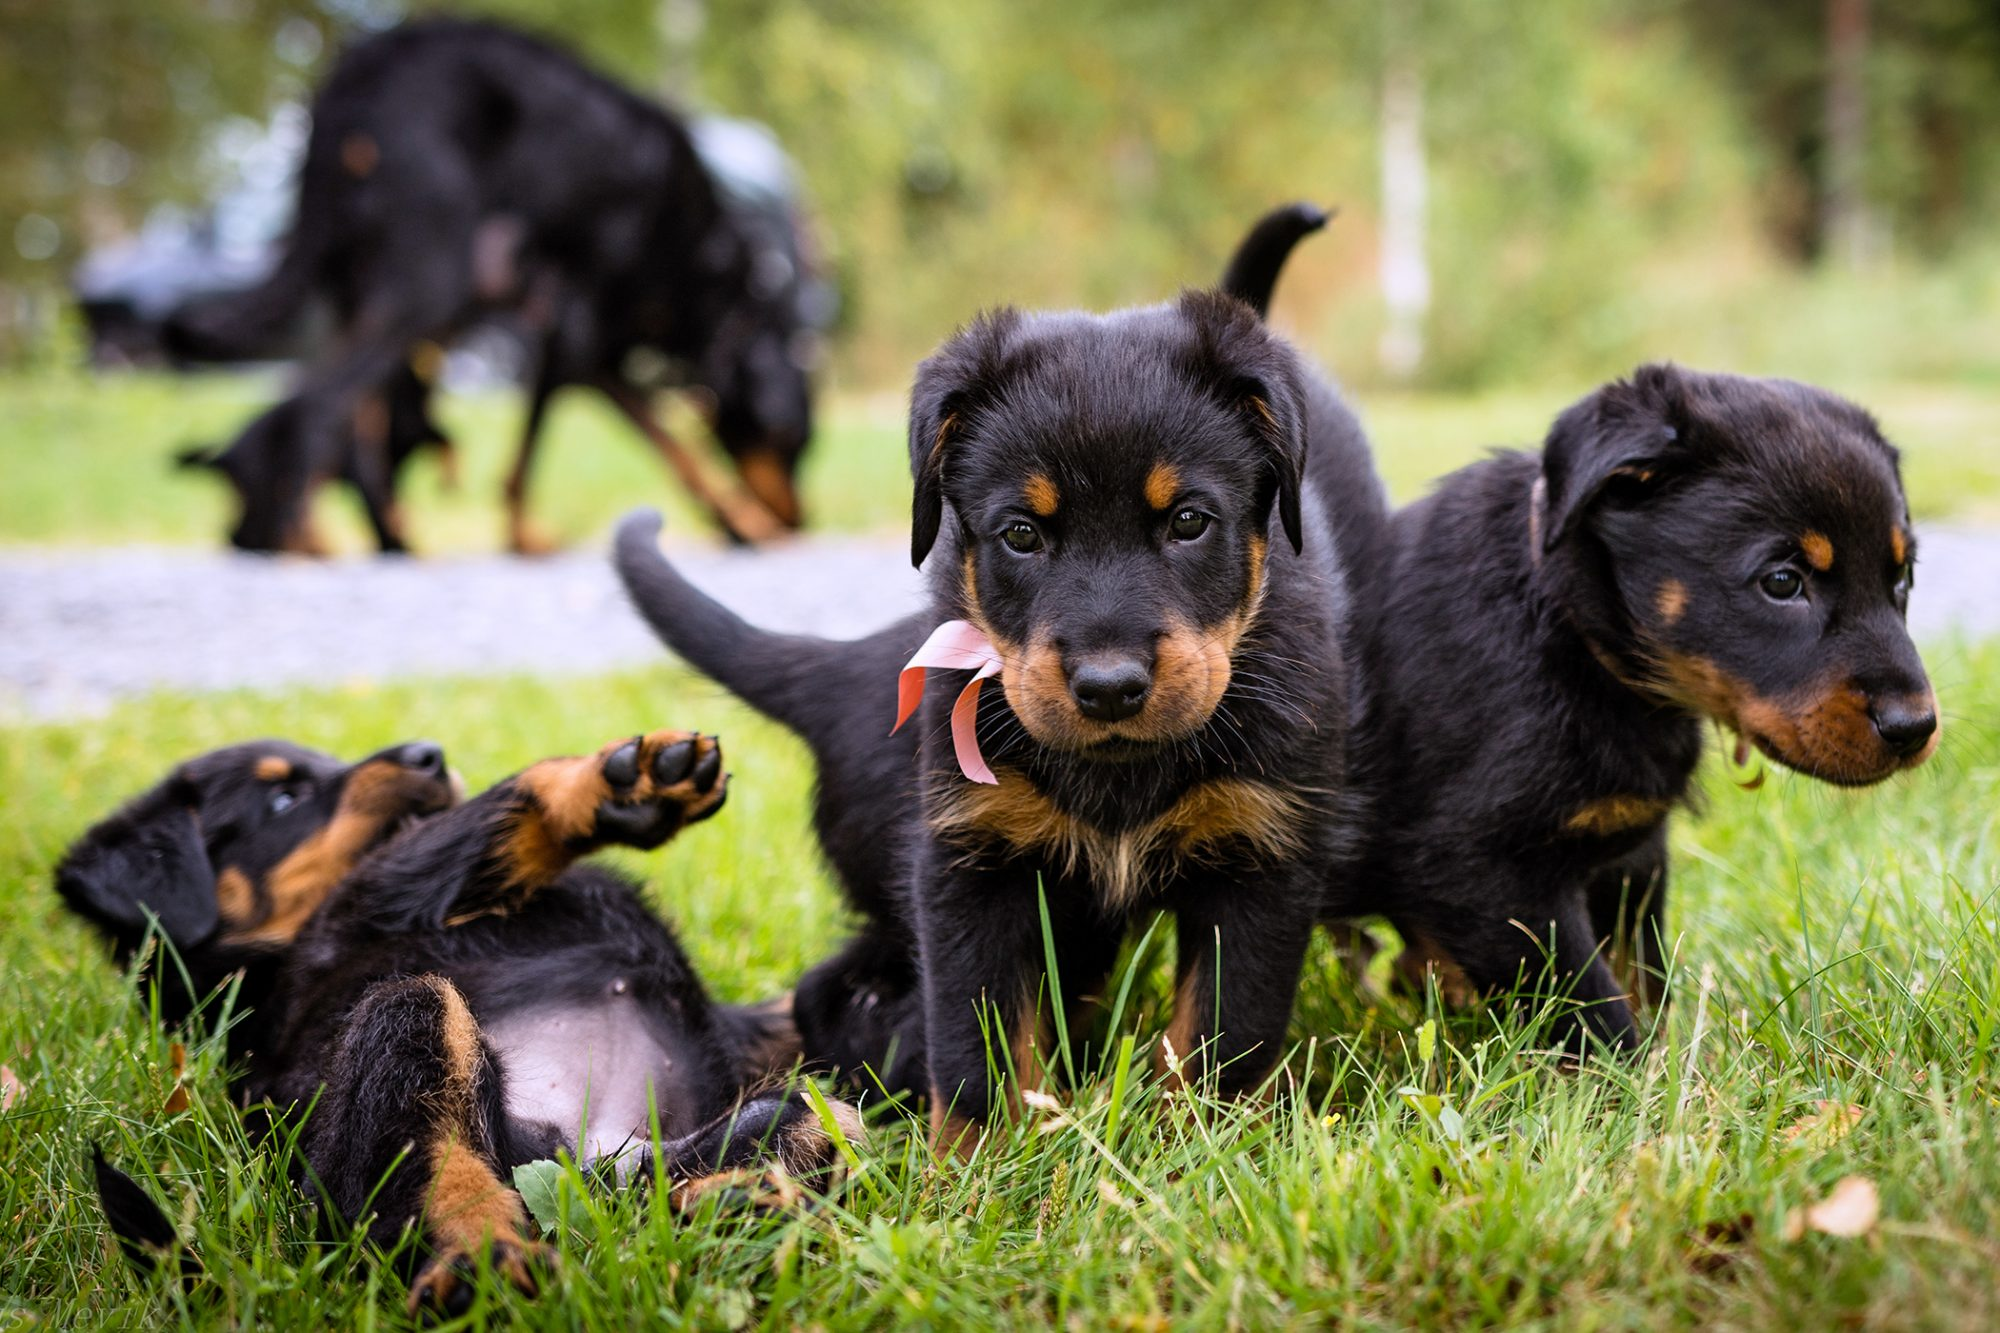 Beaucerpn puppies play together in grass